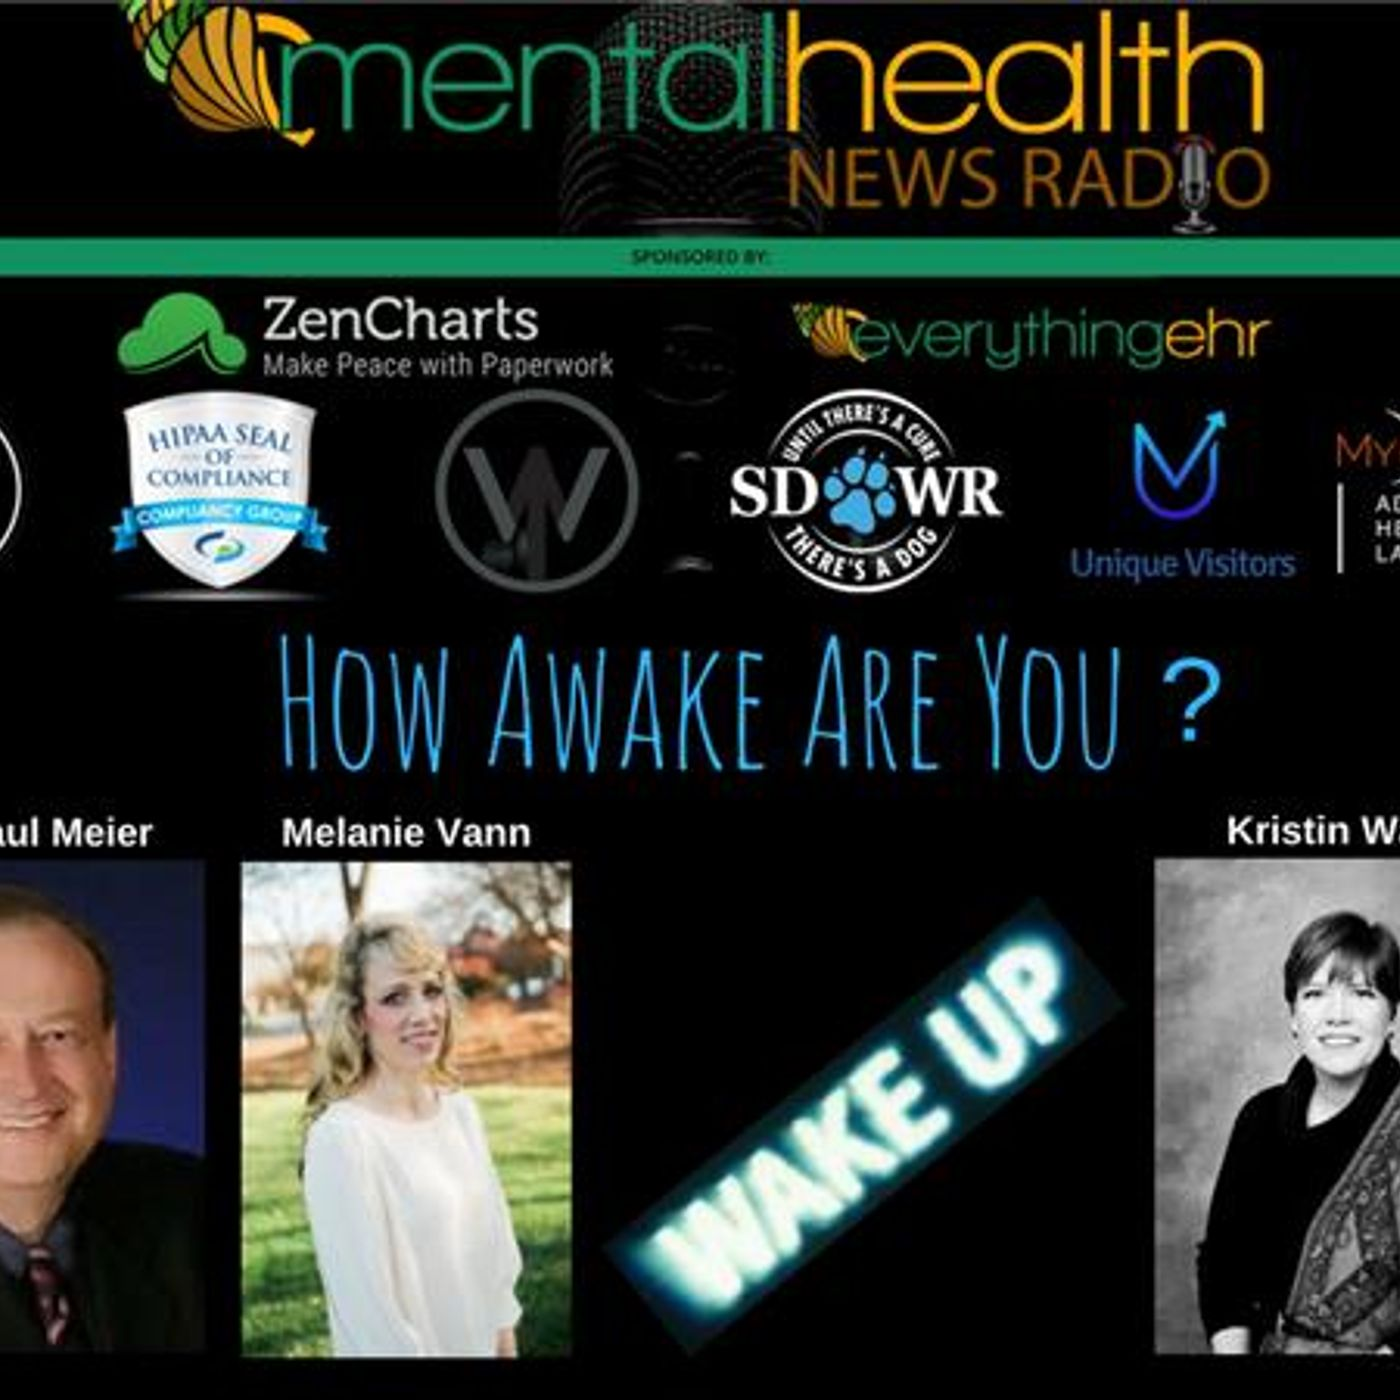 Mental Health News Radio - Round Table Discussions with Dr. Paul Meier: How Awake Are You?